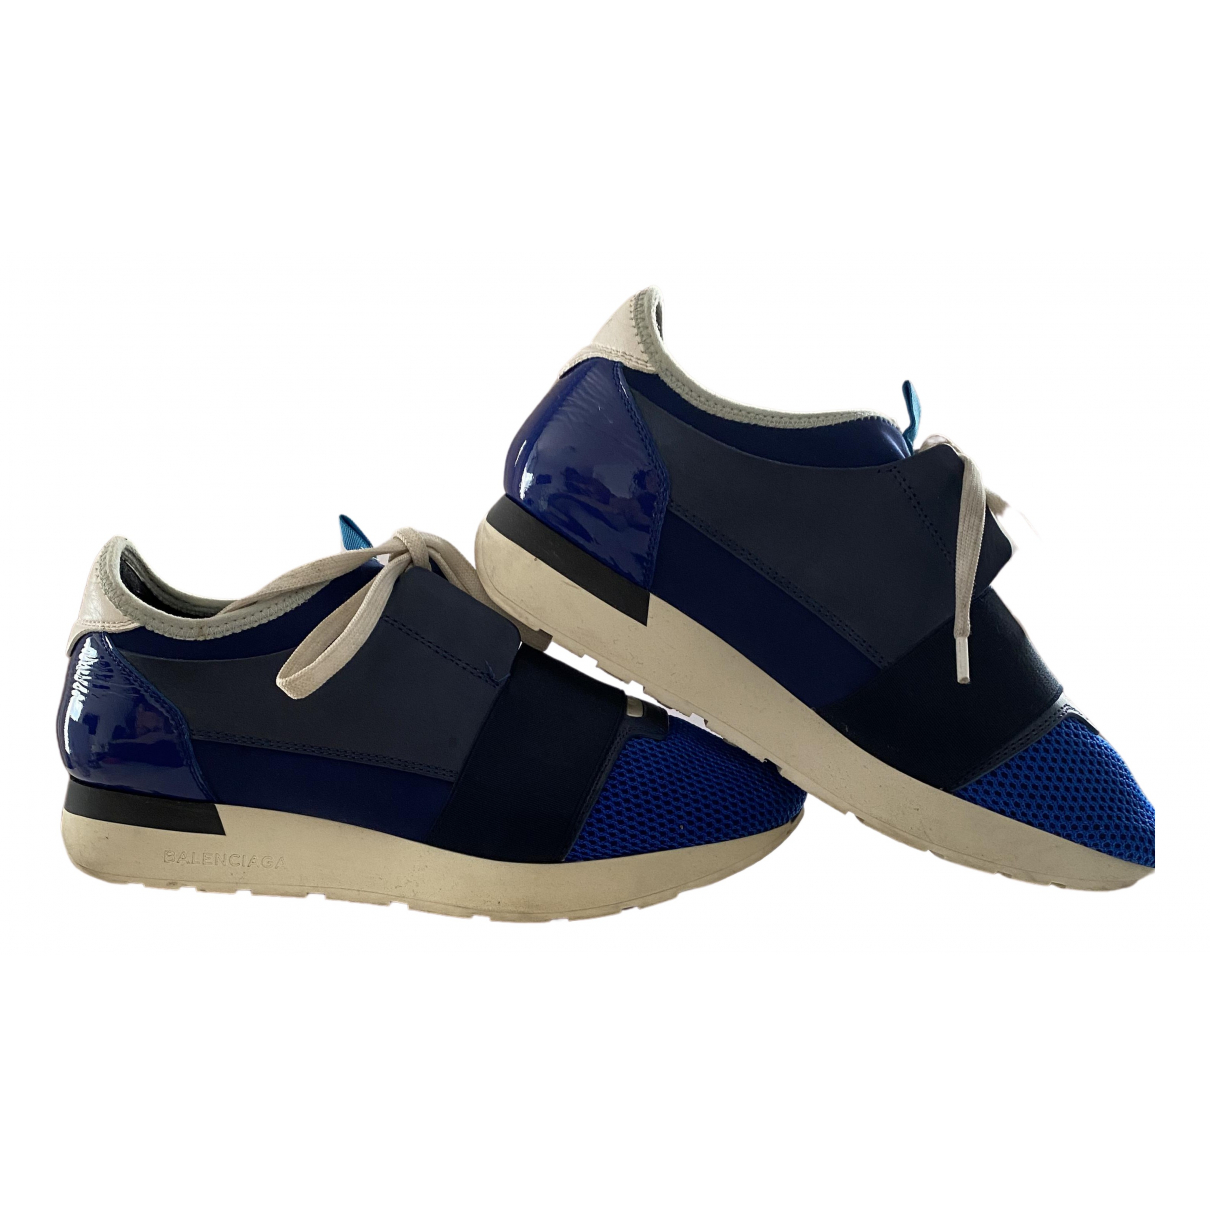 Balenciaga Race Sneakers in  Blau Leder